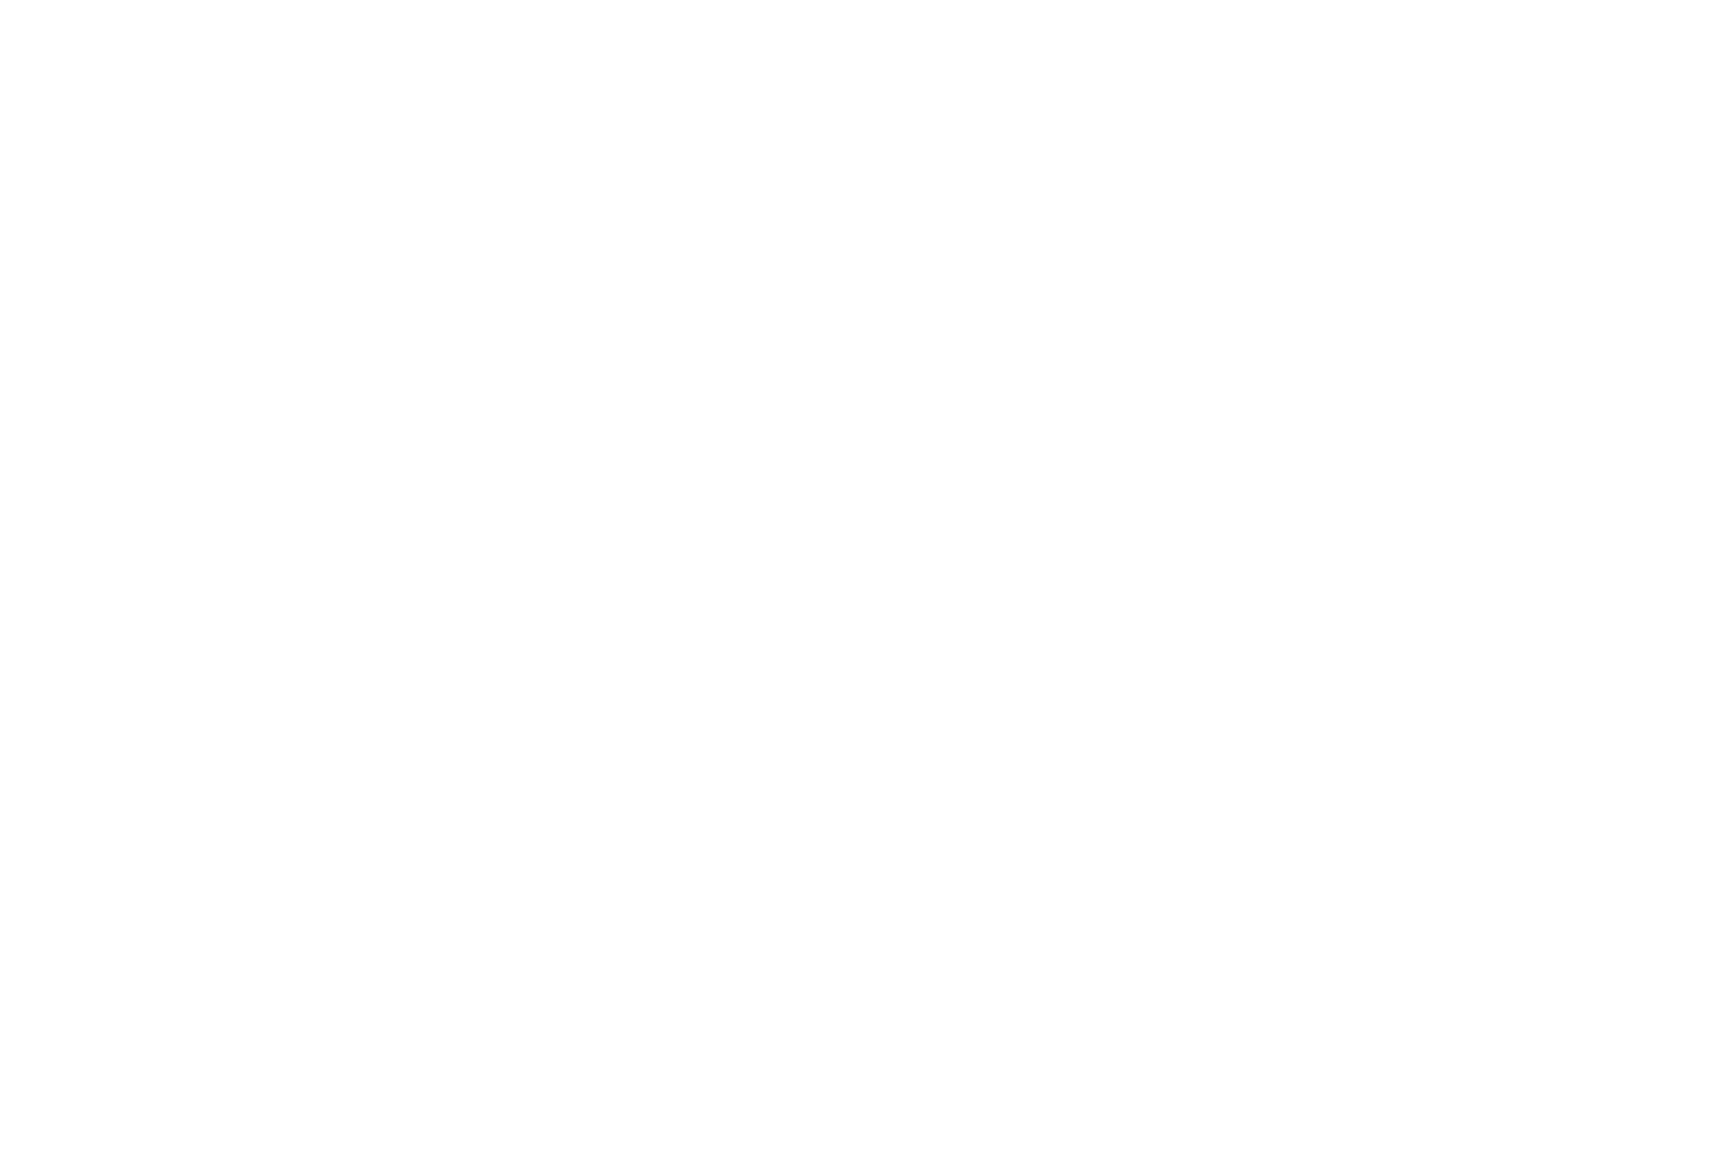 SEMI-FINALIST - Big Apple Film Festival and Screenplay Competition - 2020